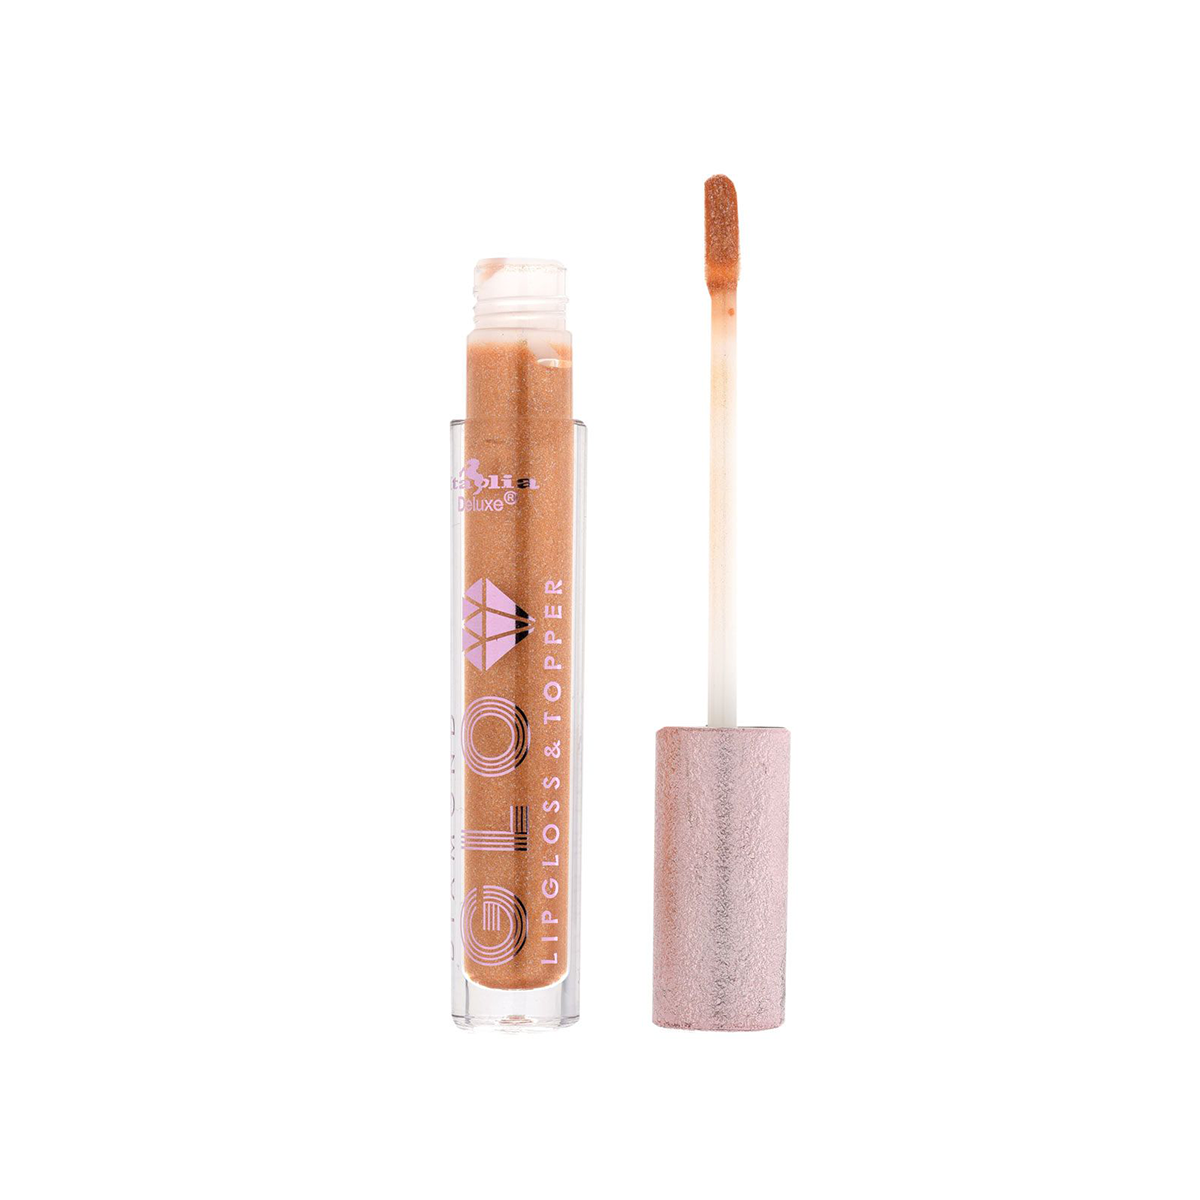 Diamond GLO Lipgloss & Topper